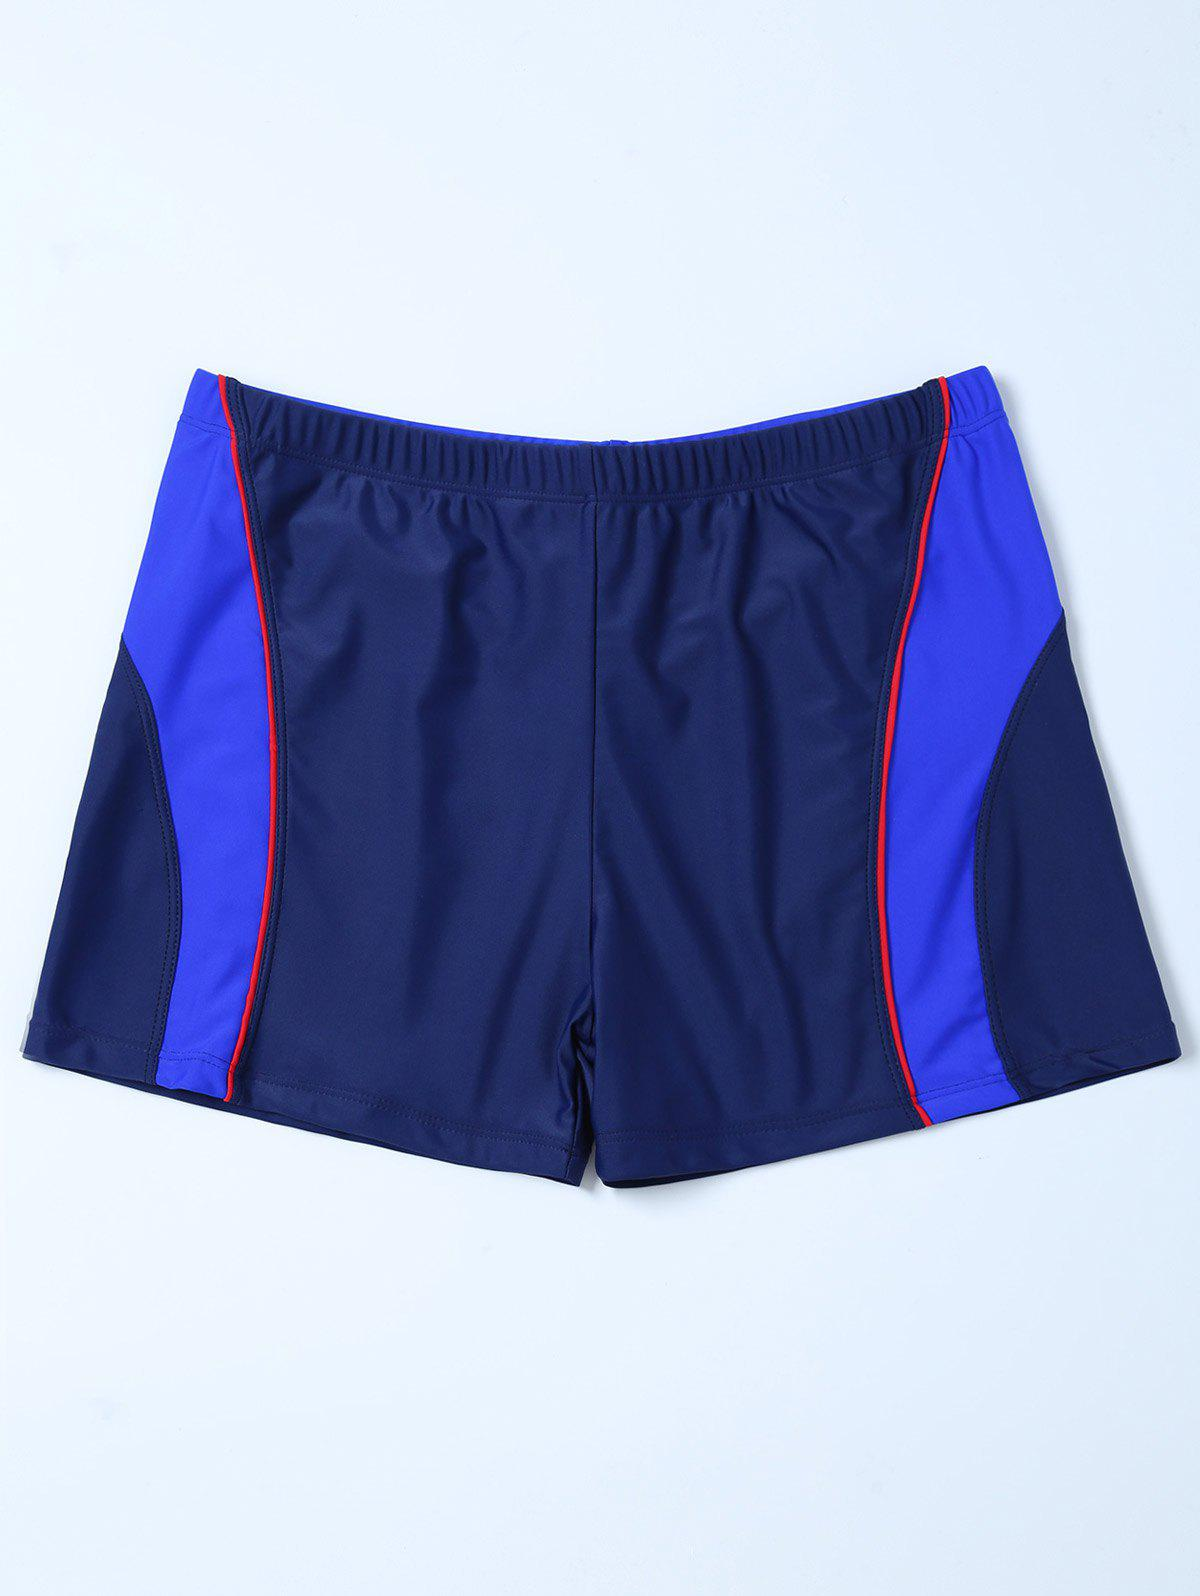 Discount Contrast Surf Swimsuit Bottom Boyshorts